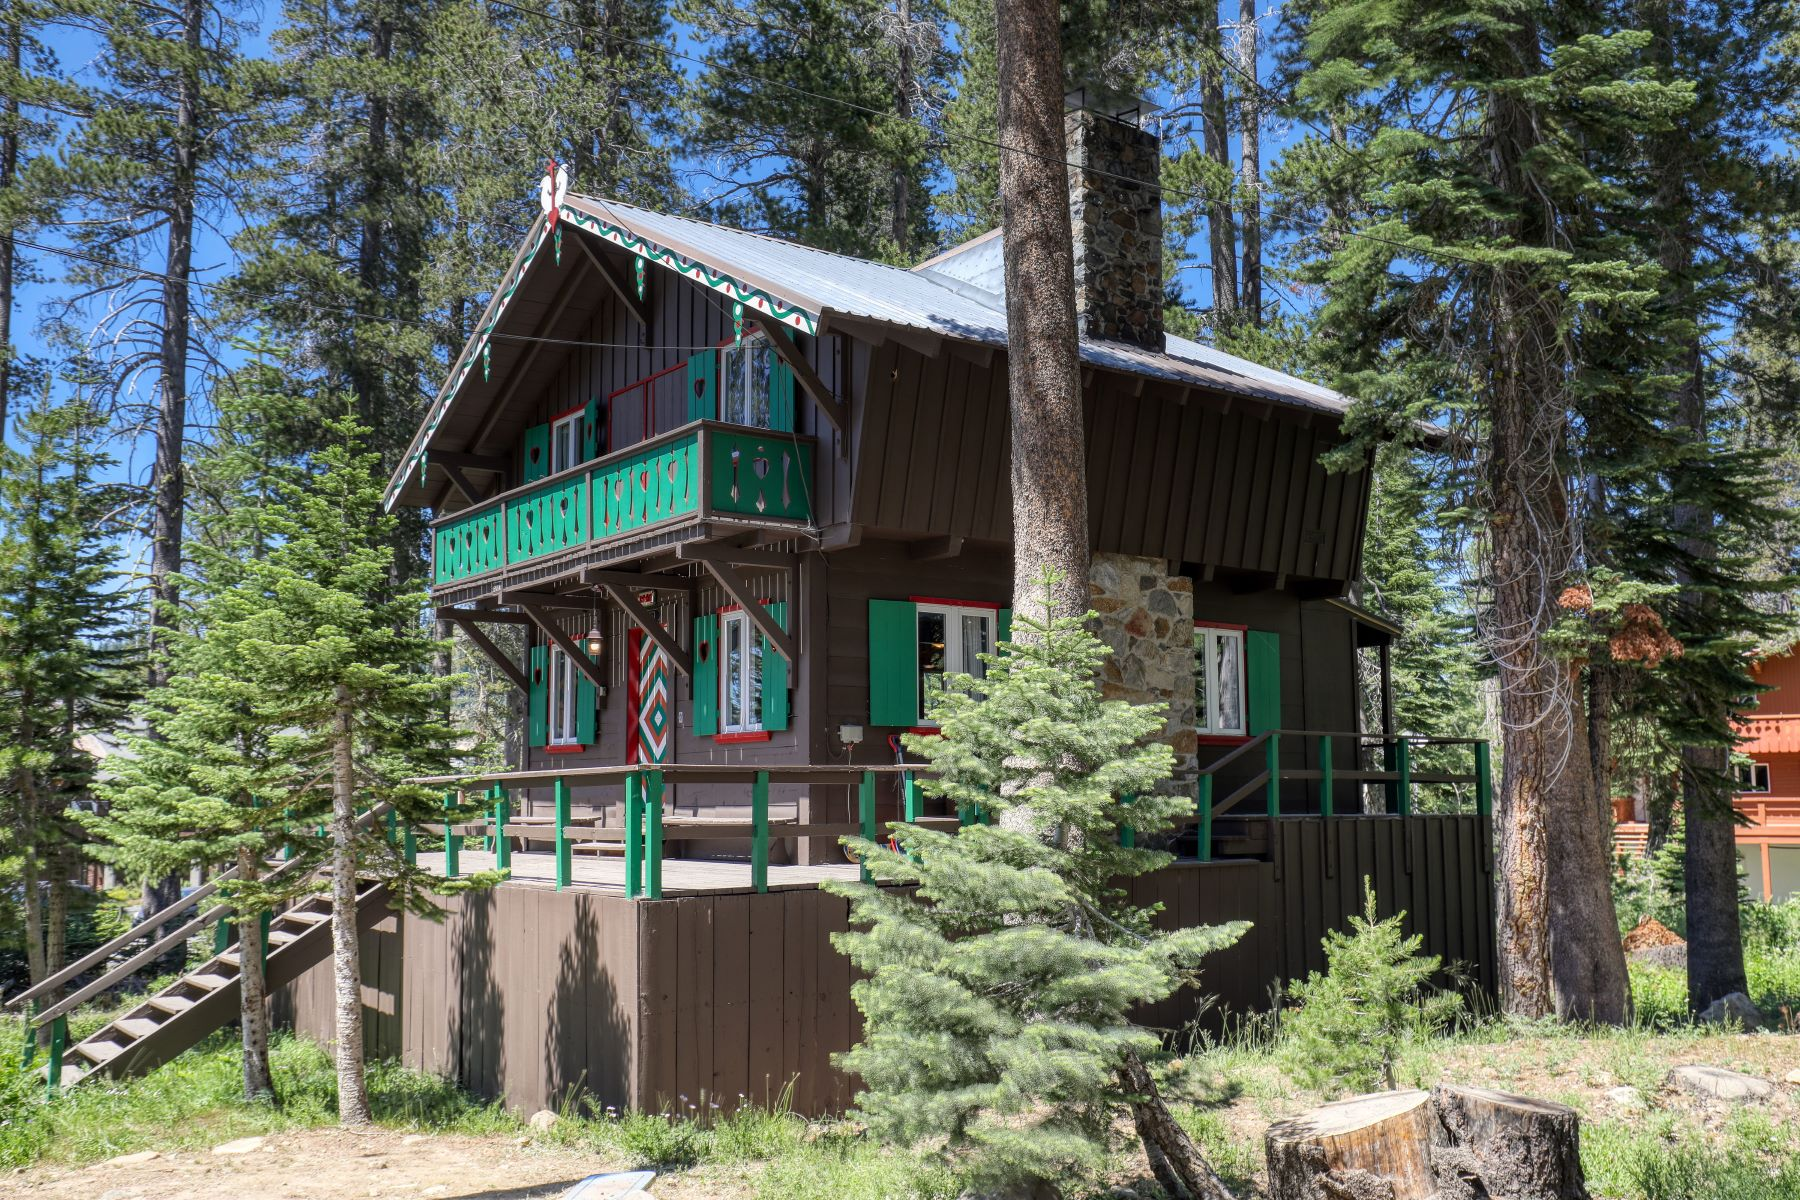 Single Family Homes for Active at Iconic Sugar Bowl Cabin 58555 Corn Lily Lane Norden, California 95724 United States